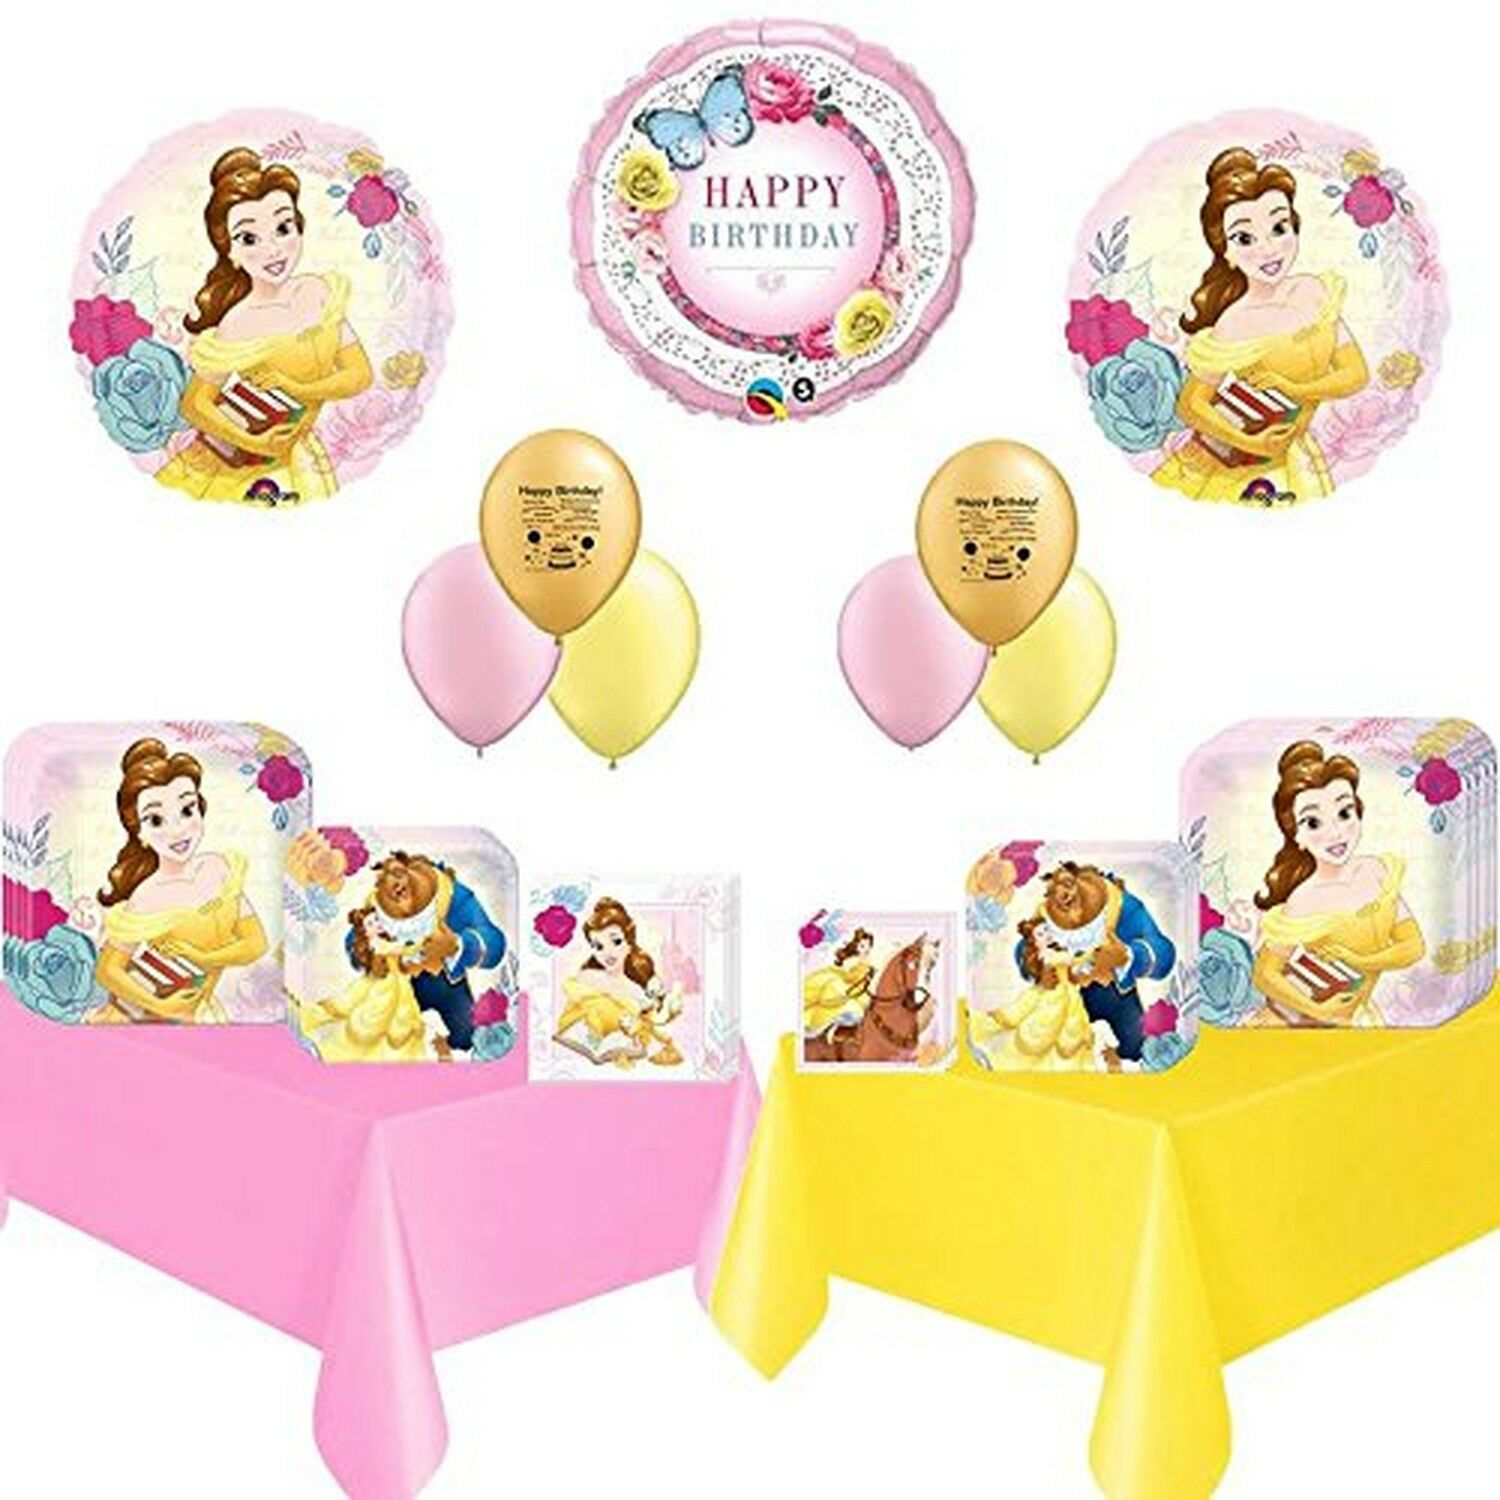 Beauty and Beast Party Supply and Balloon Bundle